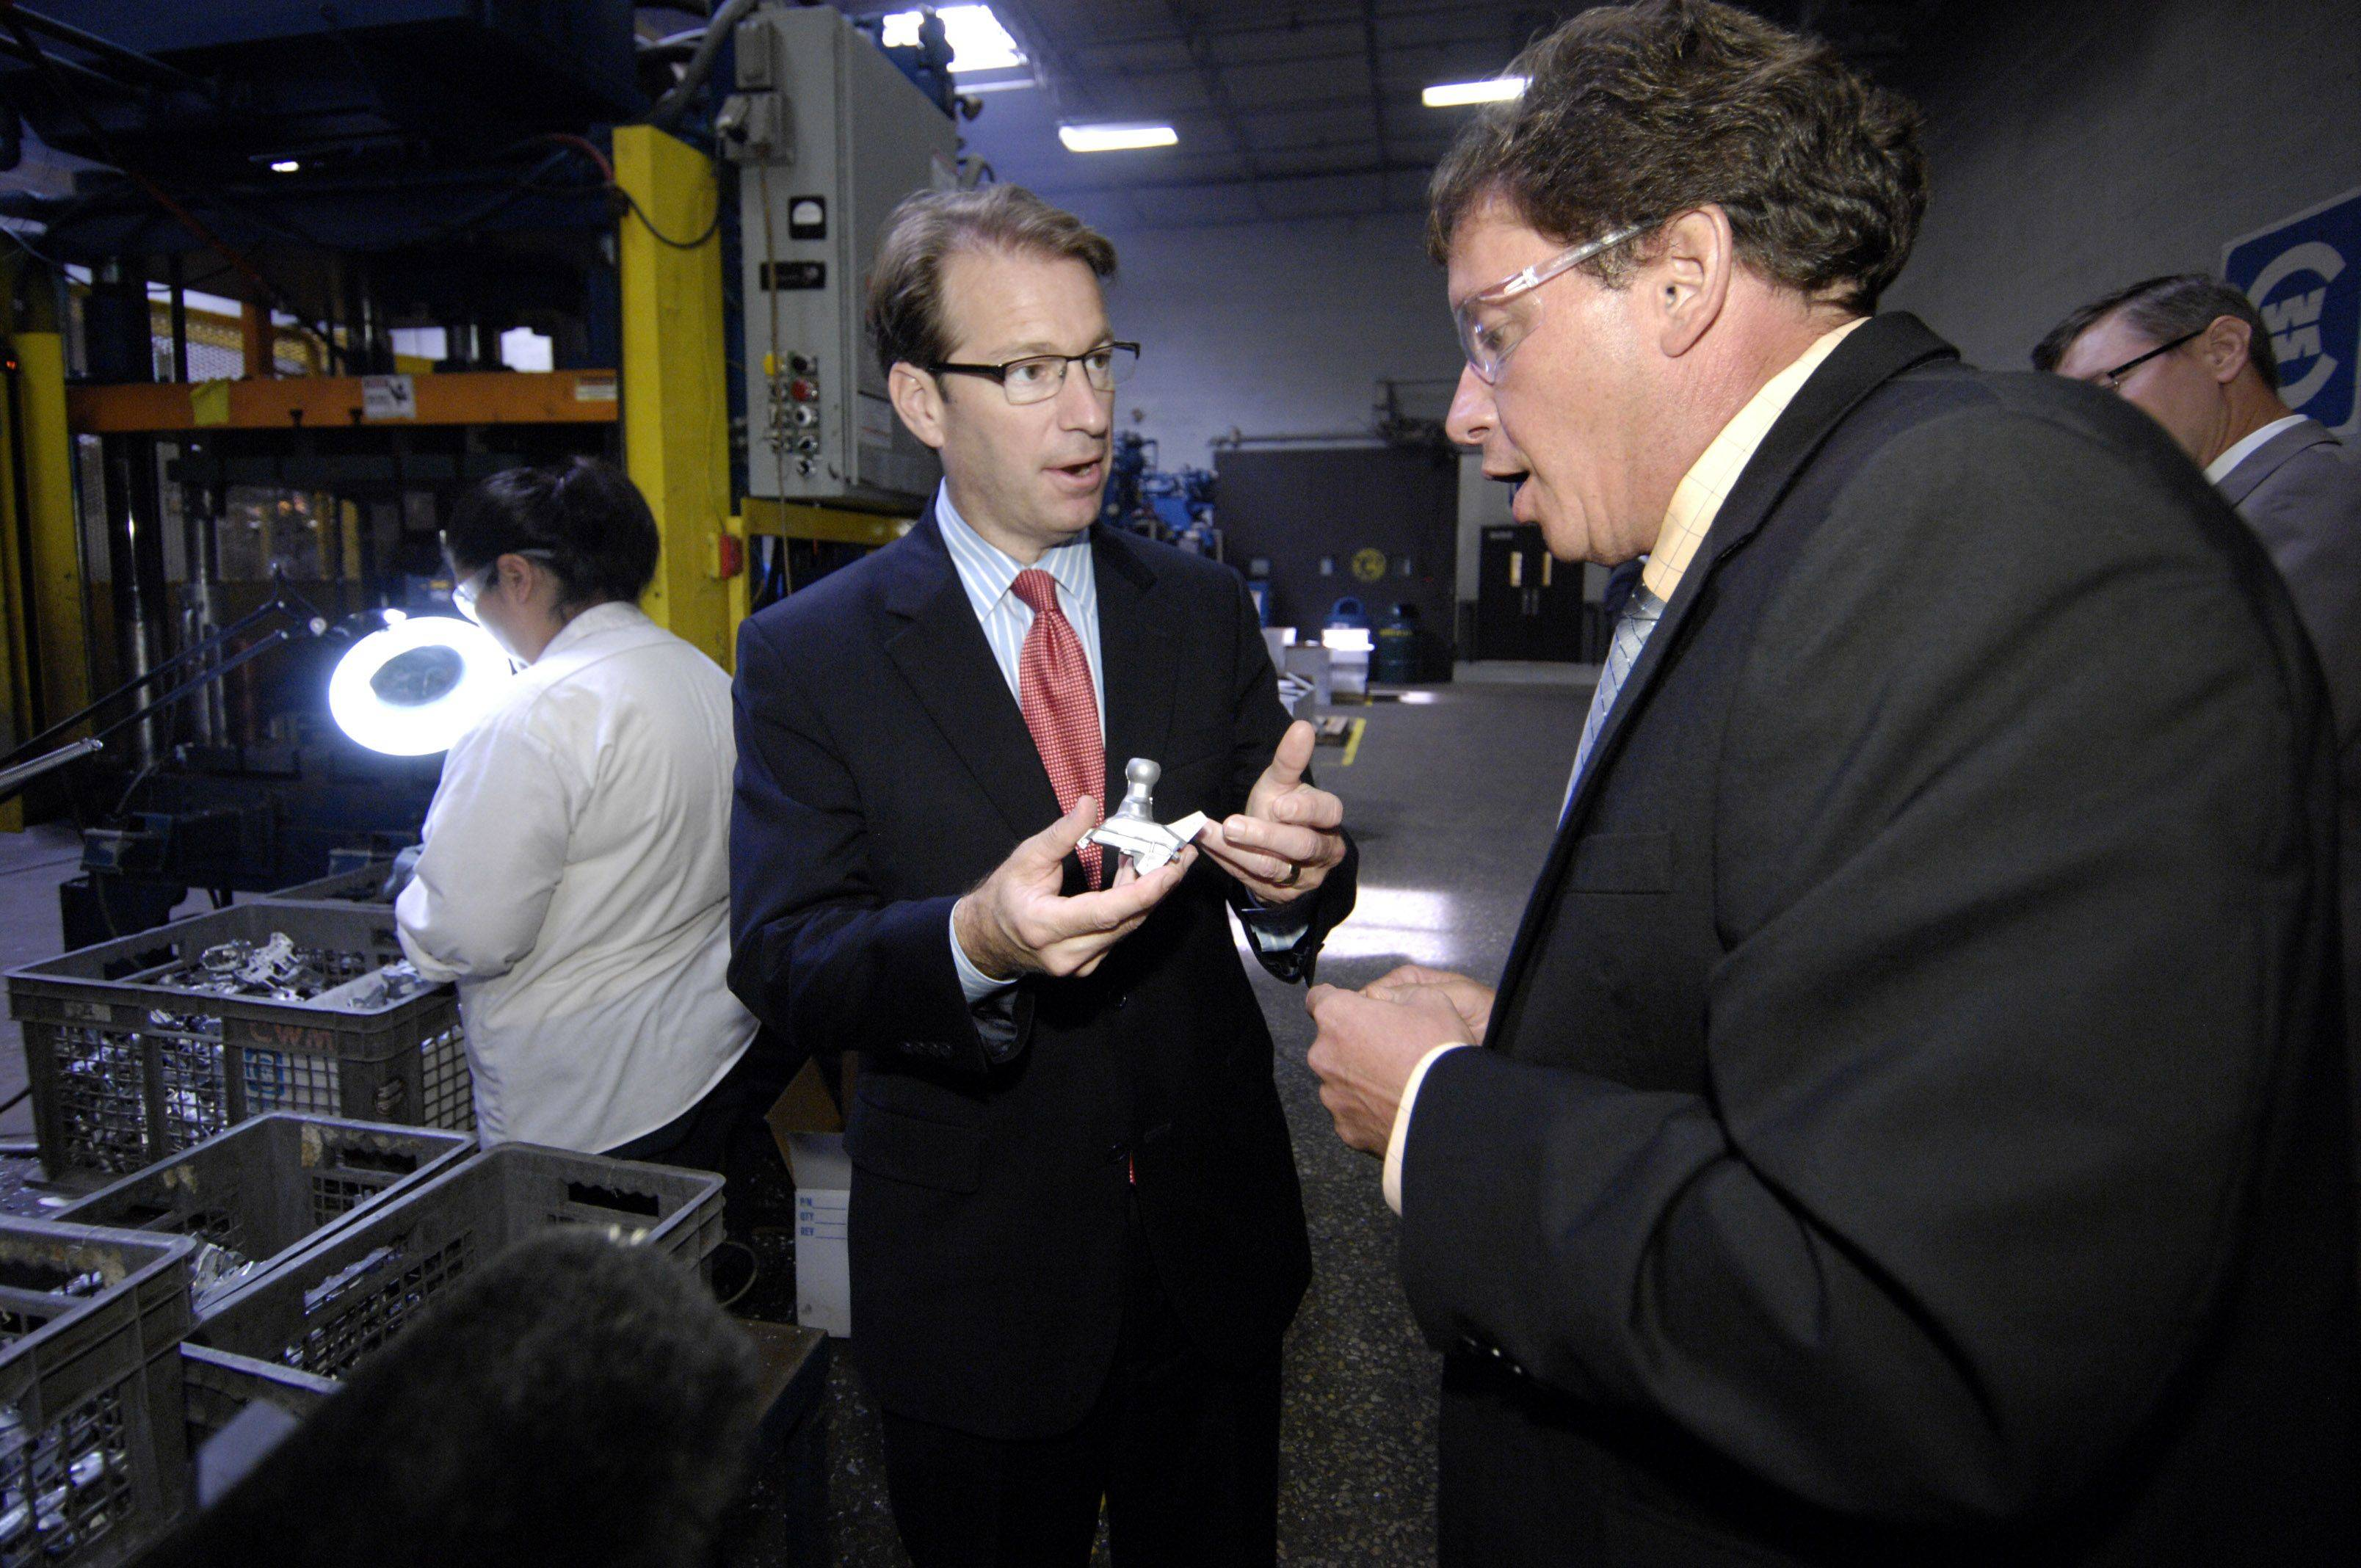 Chicago White Metal Casting President and CEO Eric Treiber told Congressman Peter Roskam the 240-person company in Bensenville has an employee who dedicates more than half of his time to complying with government regulations.